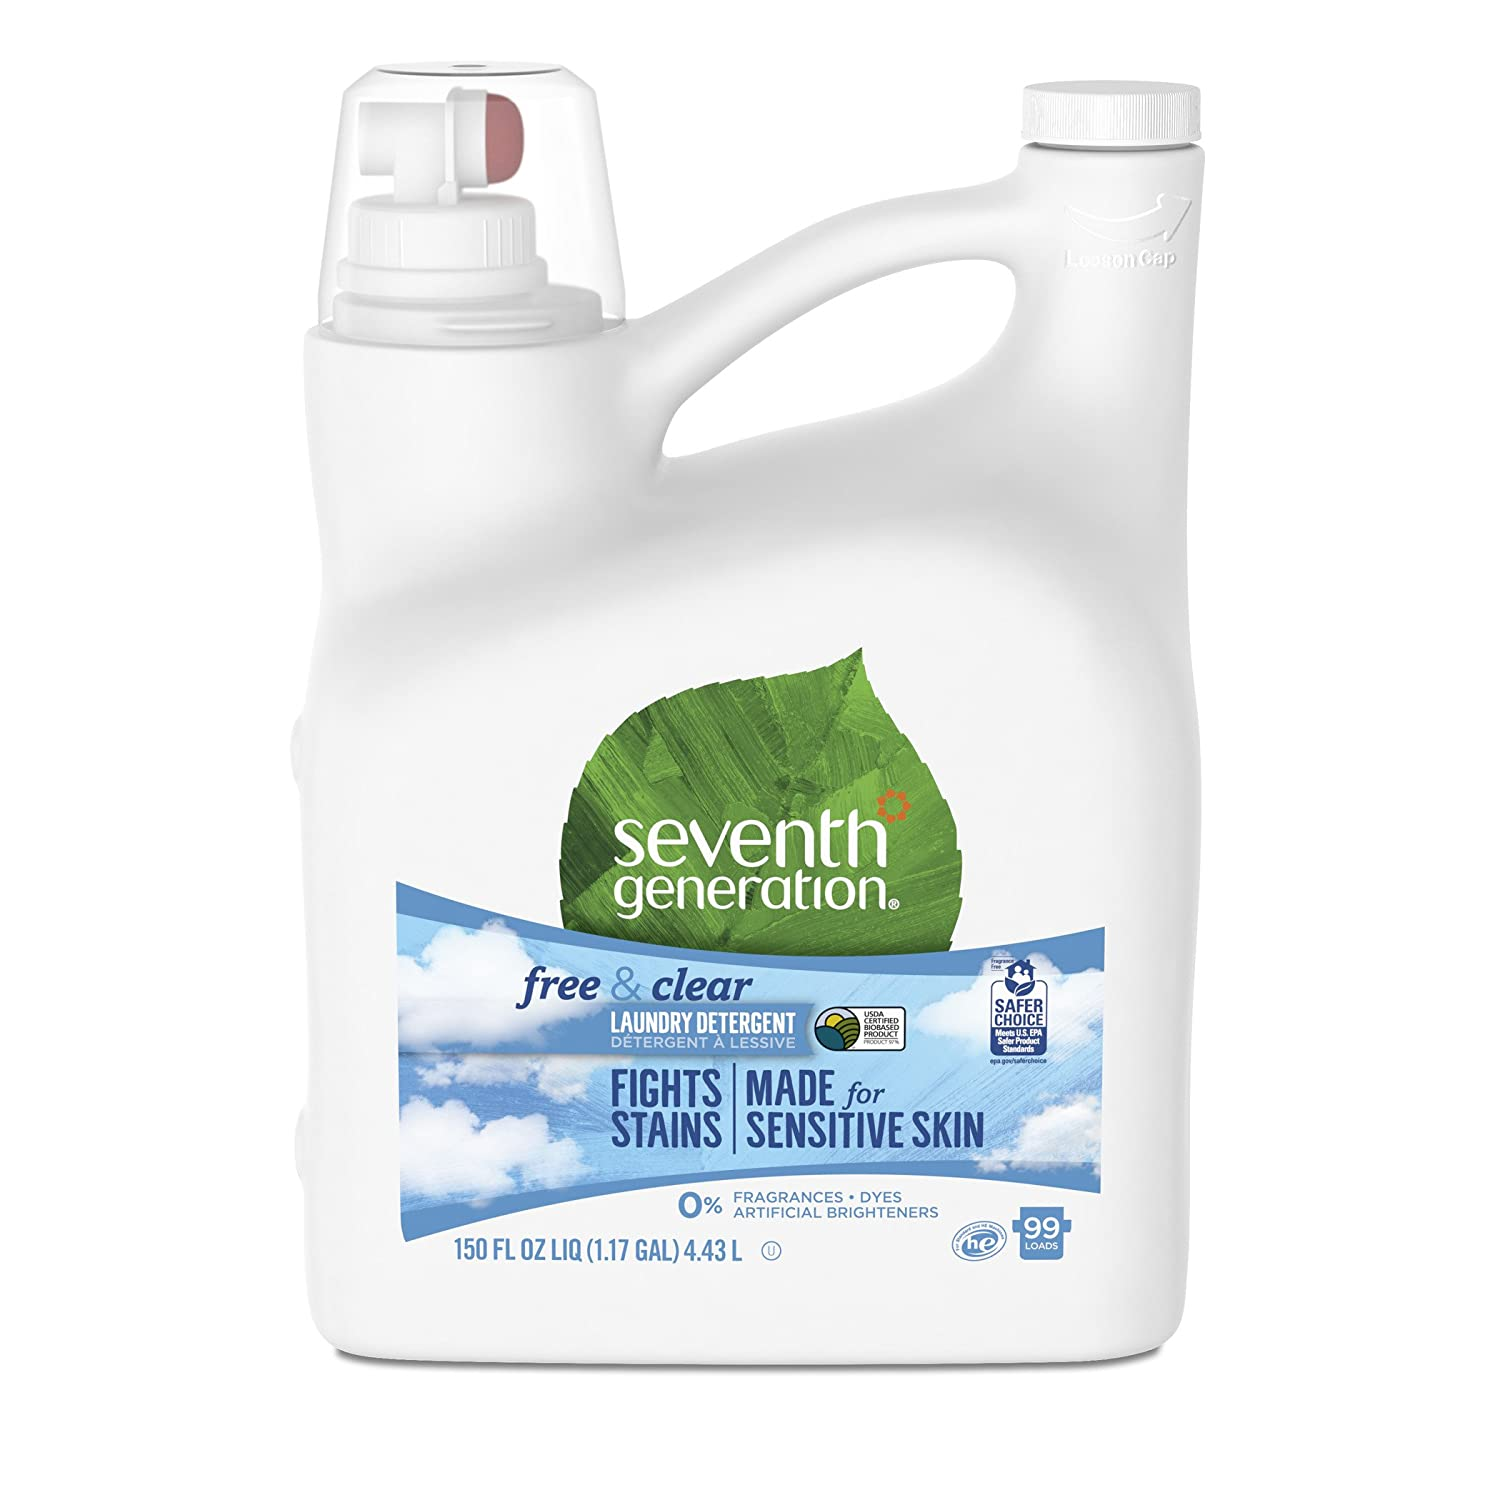 Seventh Generation Laundry Detergent, Free & Clear, 150 oz by Seventh Generation B003X00EM8